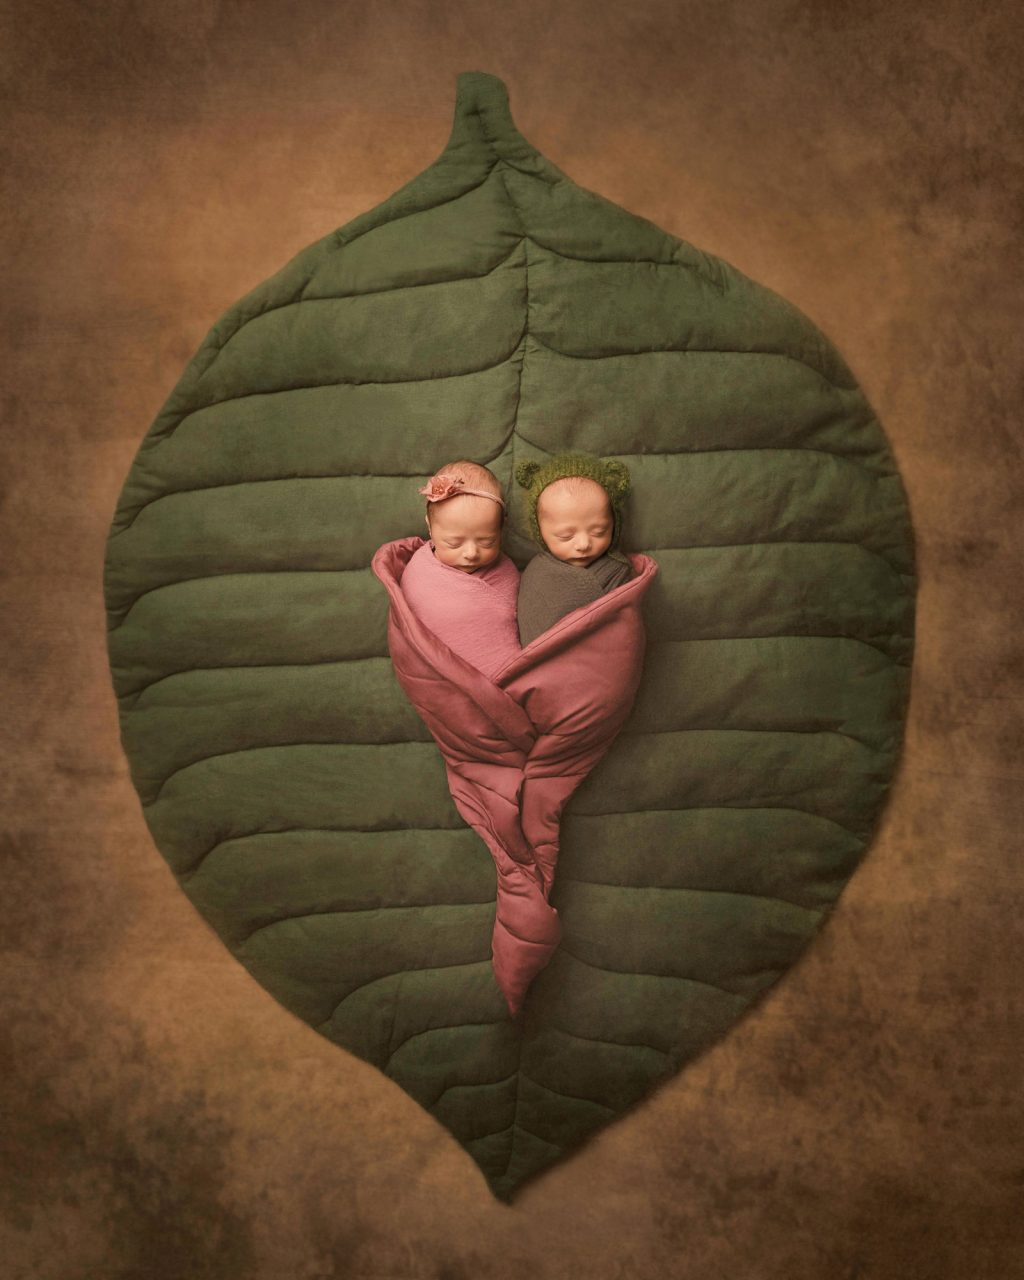 two newborn babies swaddled and asleep next to each other on larger green and soft blanket shaped like a leaf